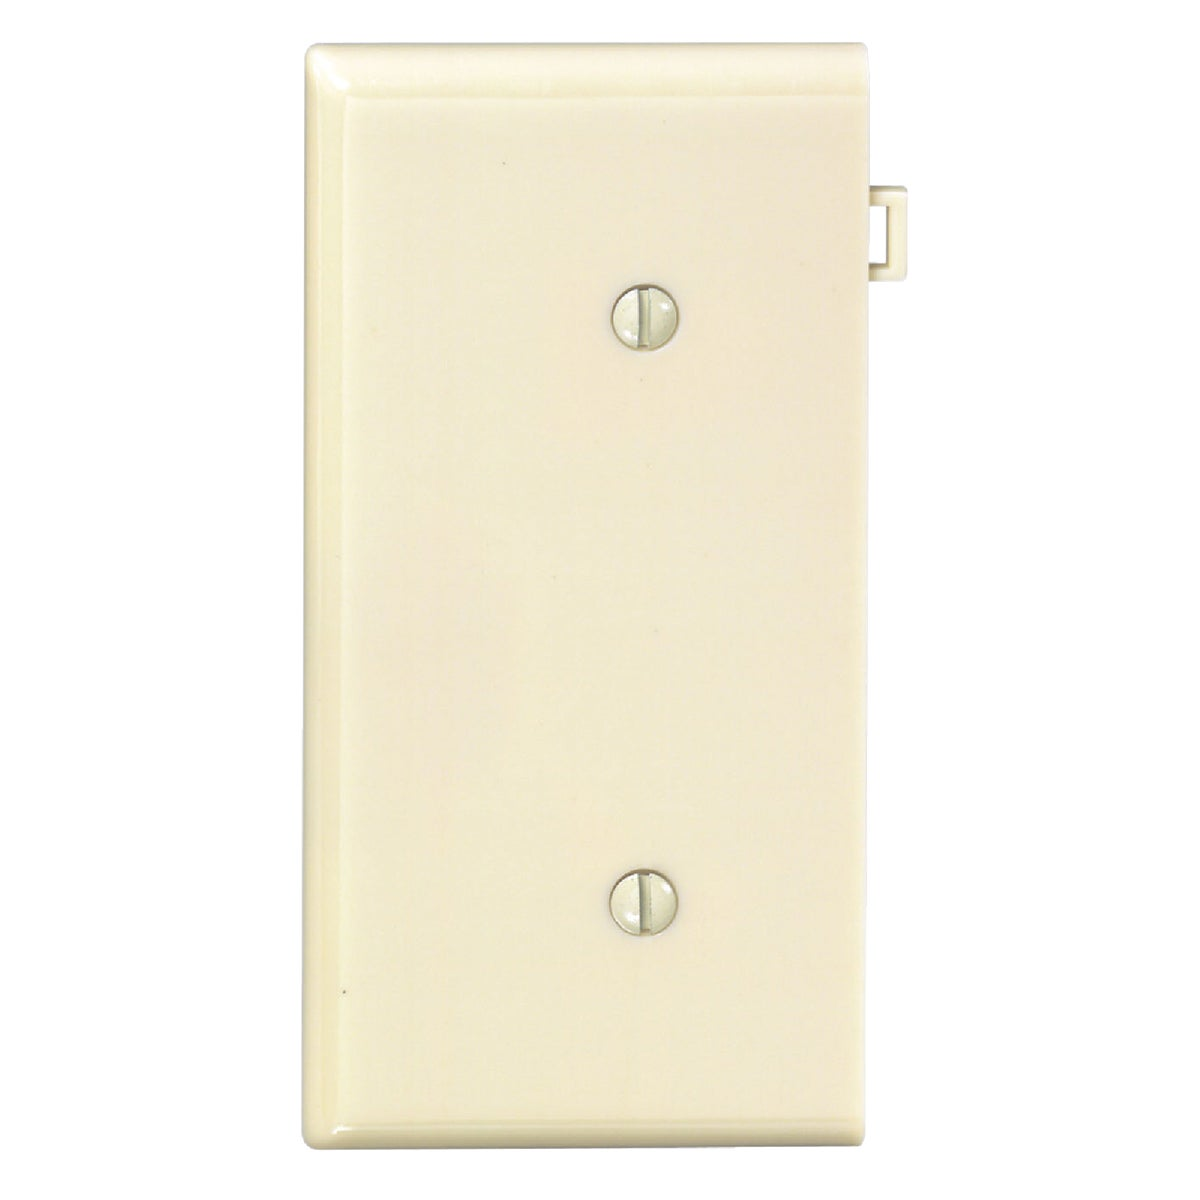 IV BLANK END PLATE - 924-PSE14-I by Leviton Mfg Co